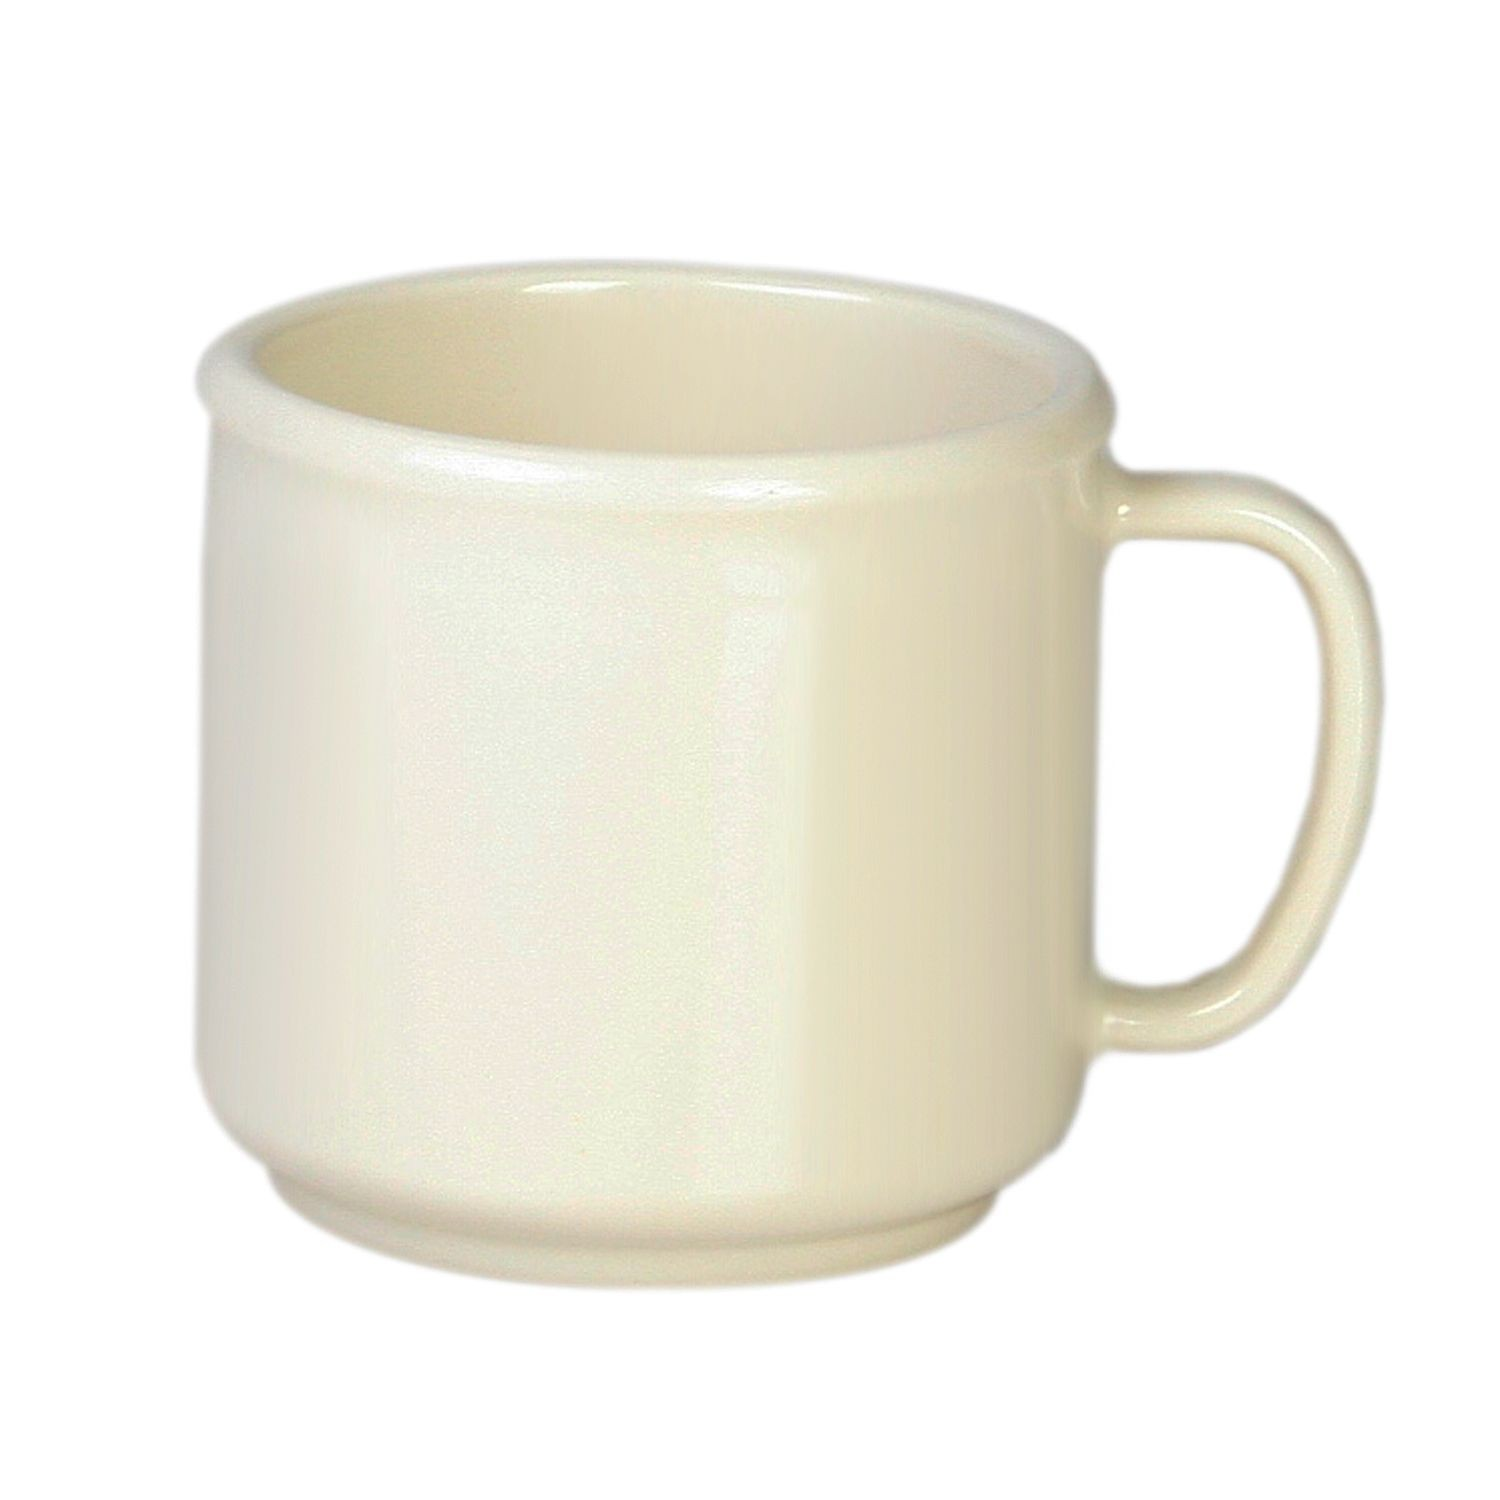 Thunder Group CR9035V Ivory Melamine Mug 10 oz. - 1 doz